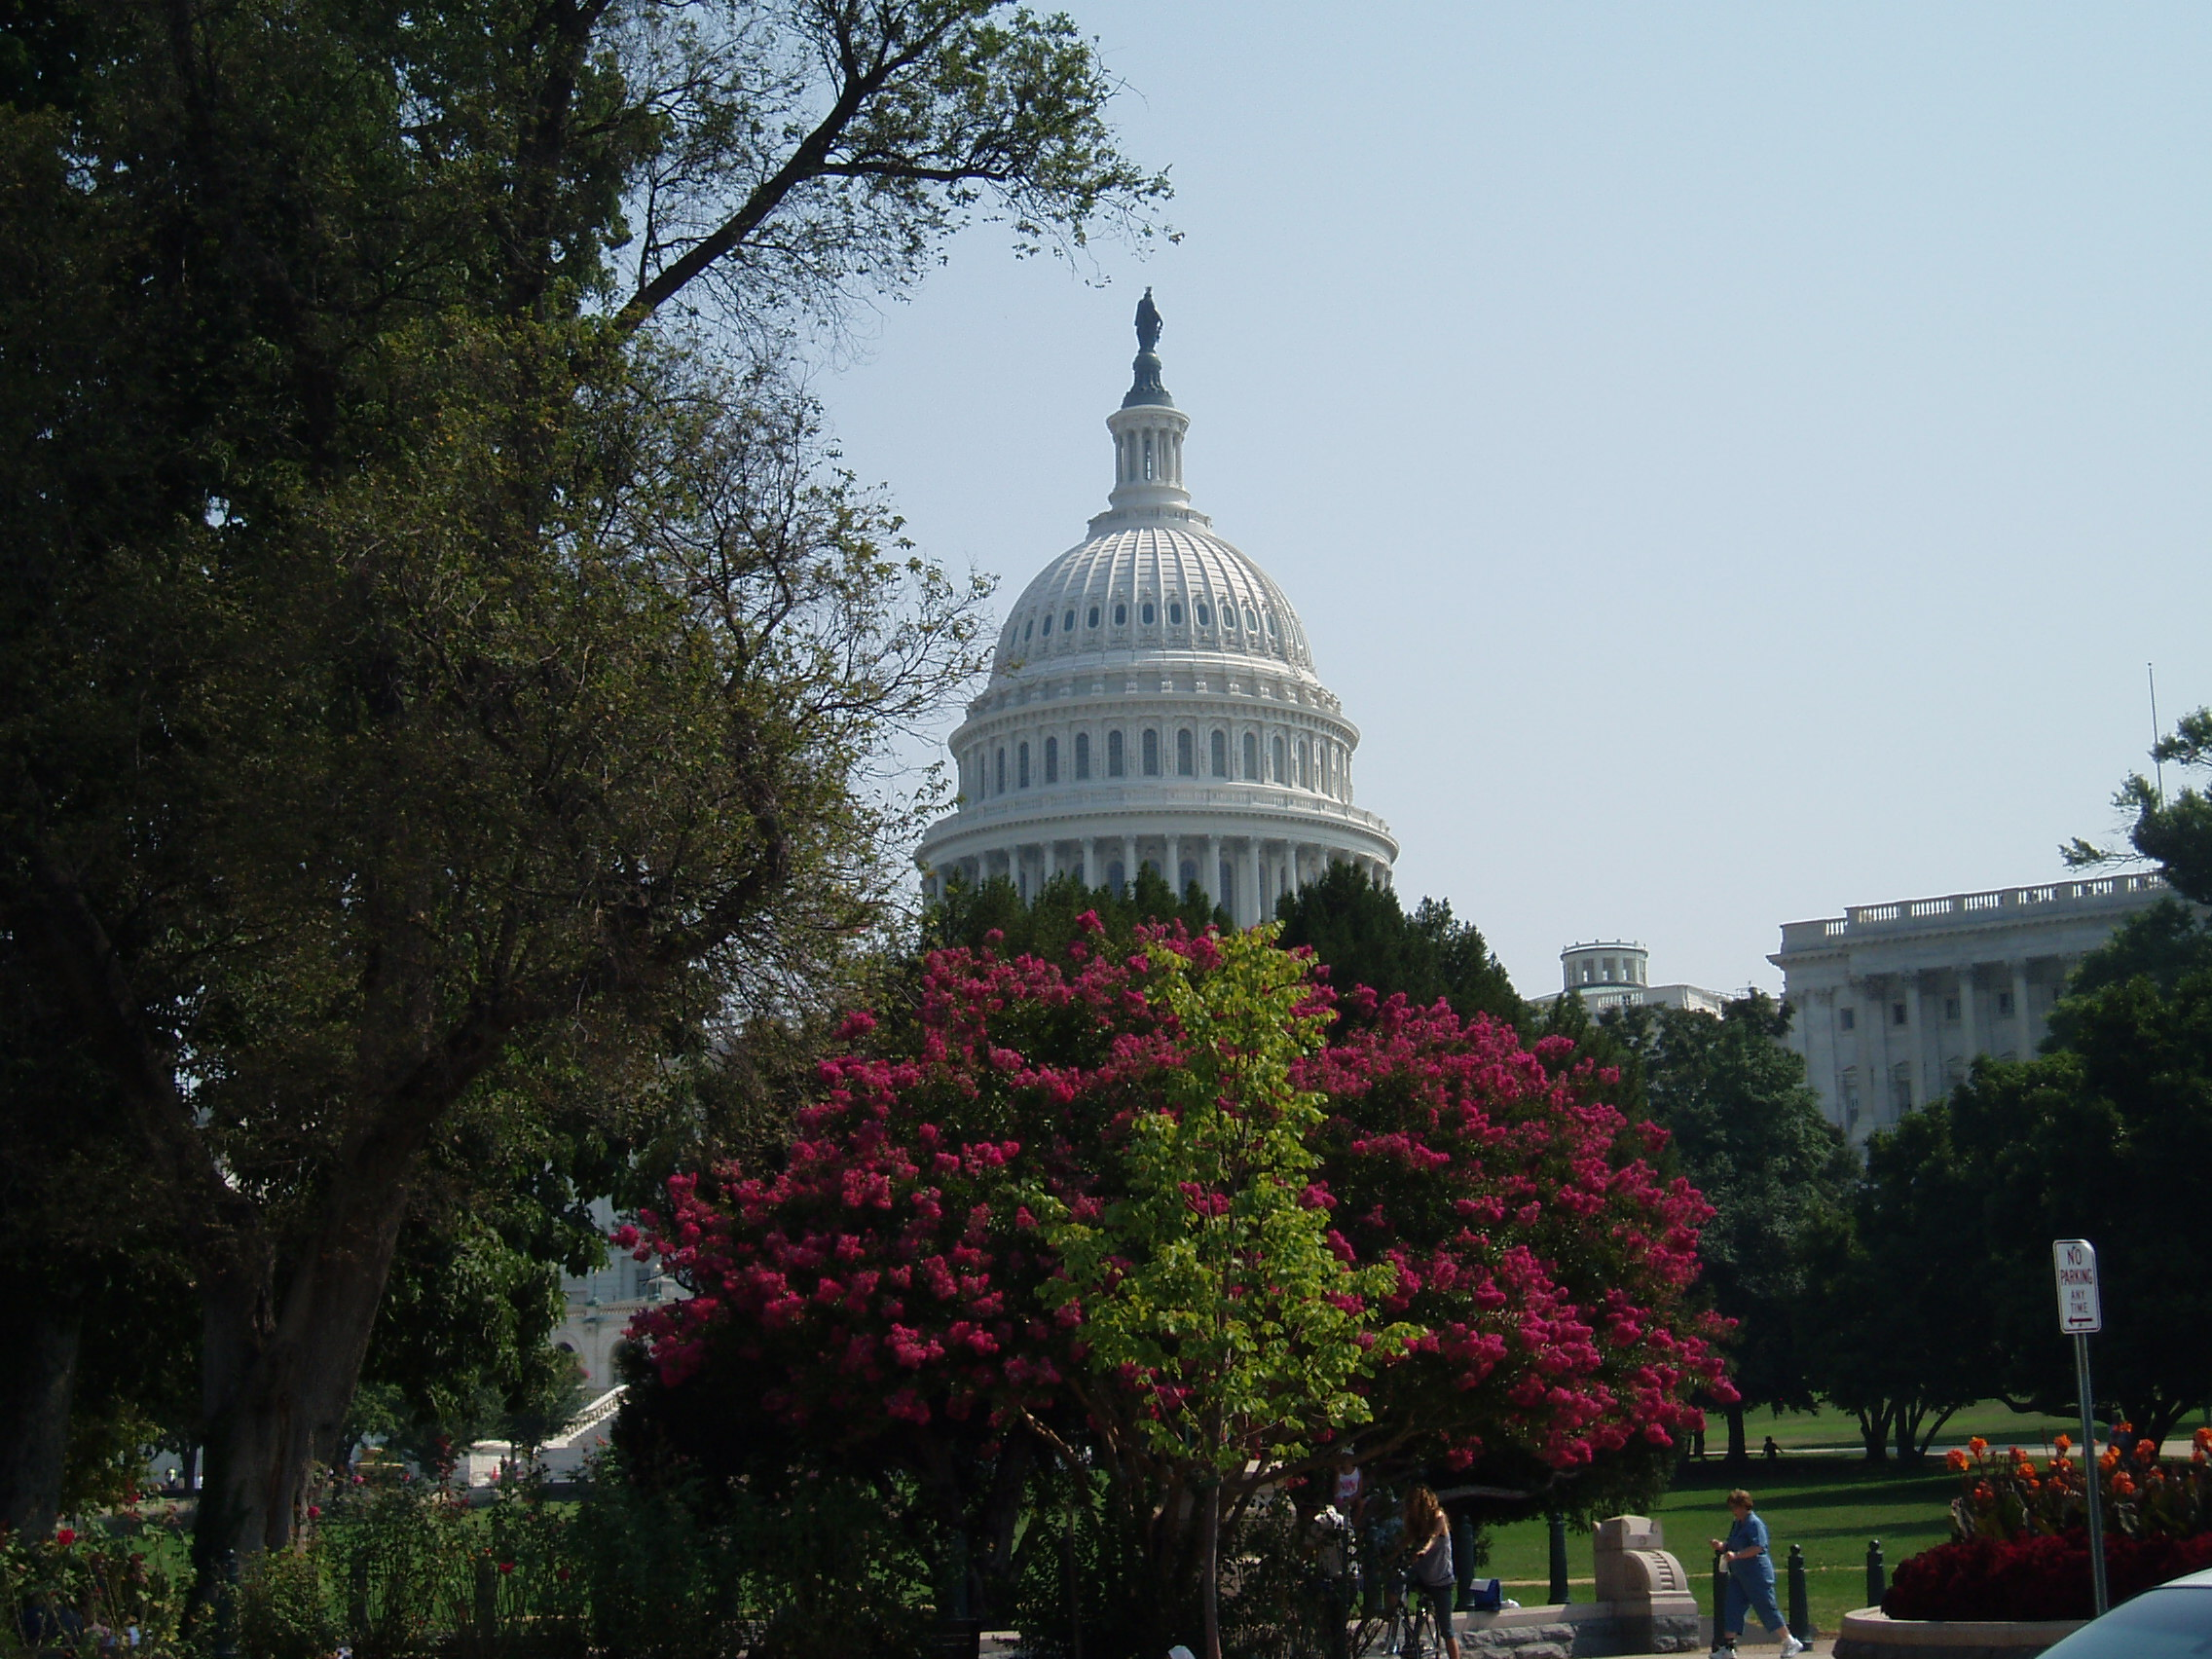 Writing from the nation's capital